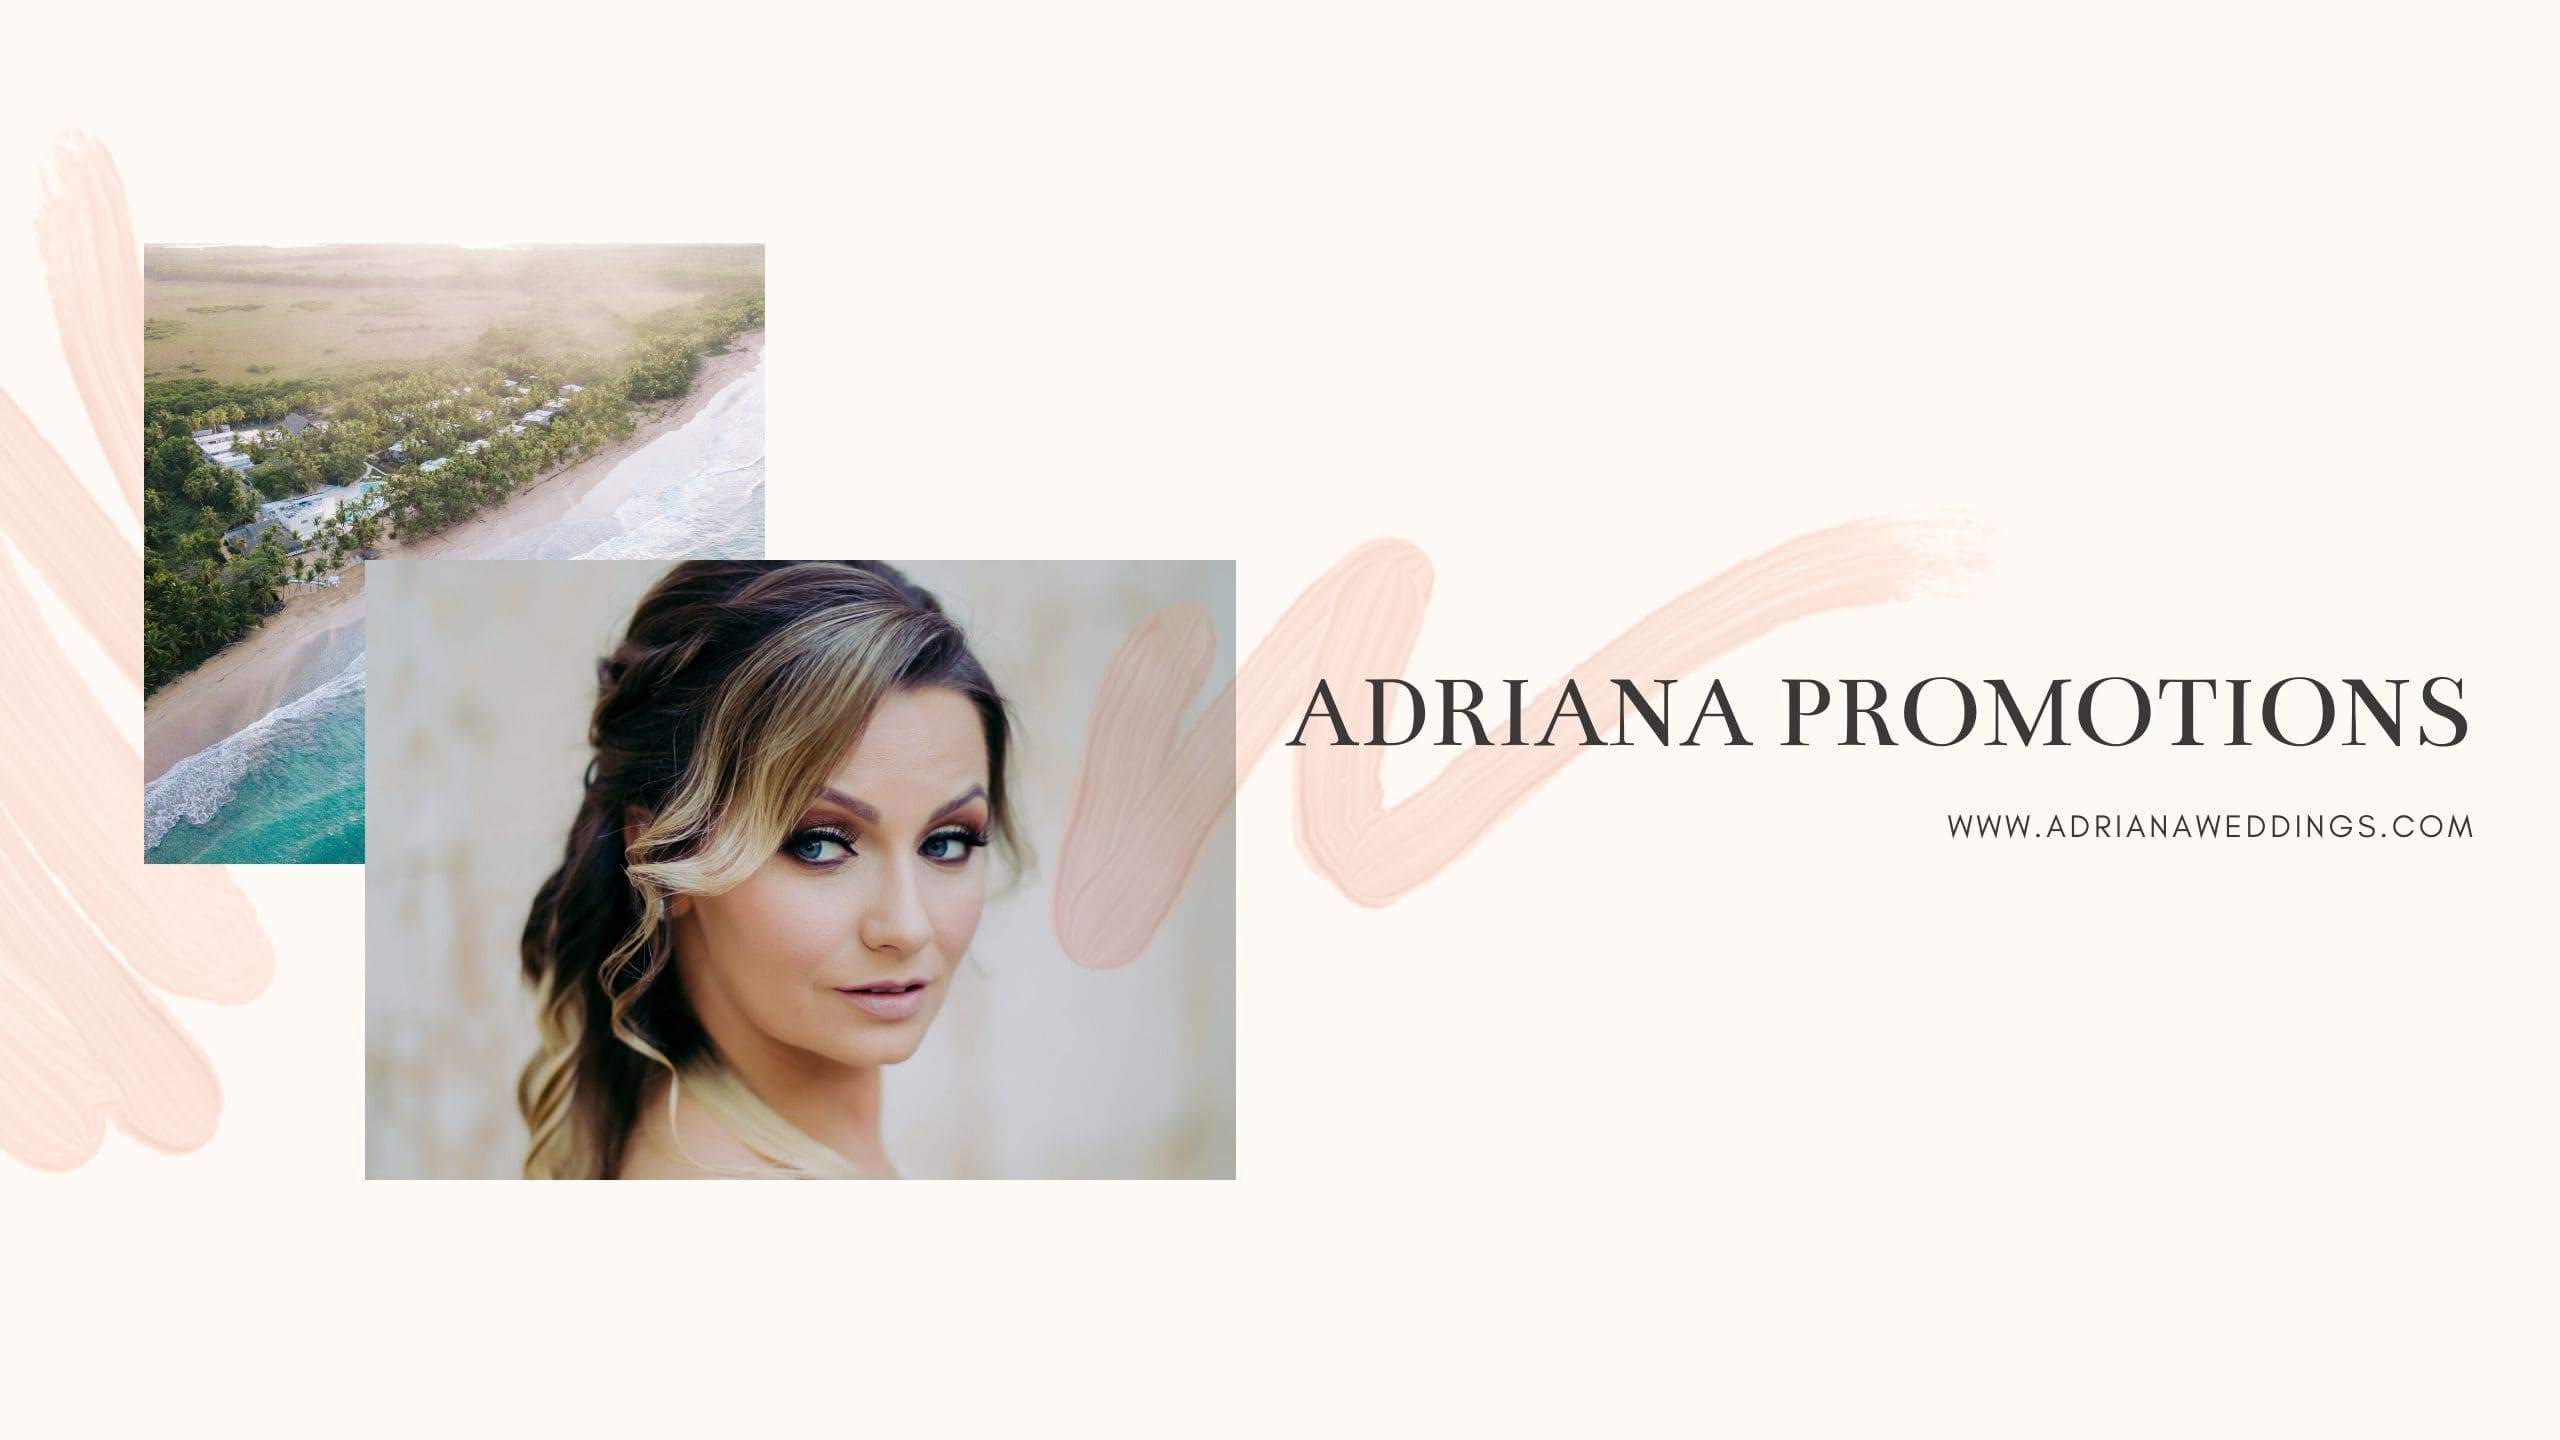 ADRIANA Promotions, Photography by NCH Films for Destination Wedding network Adriana Weddings